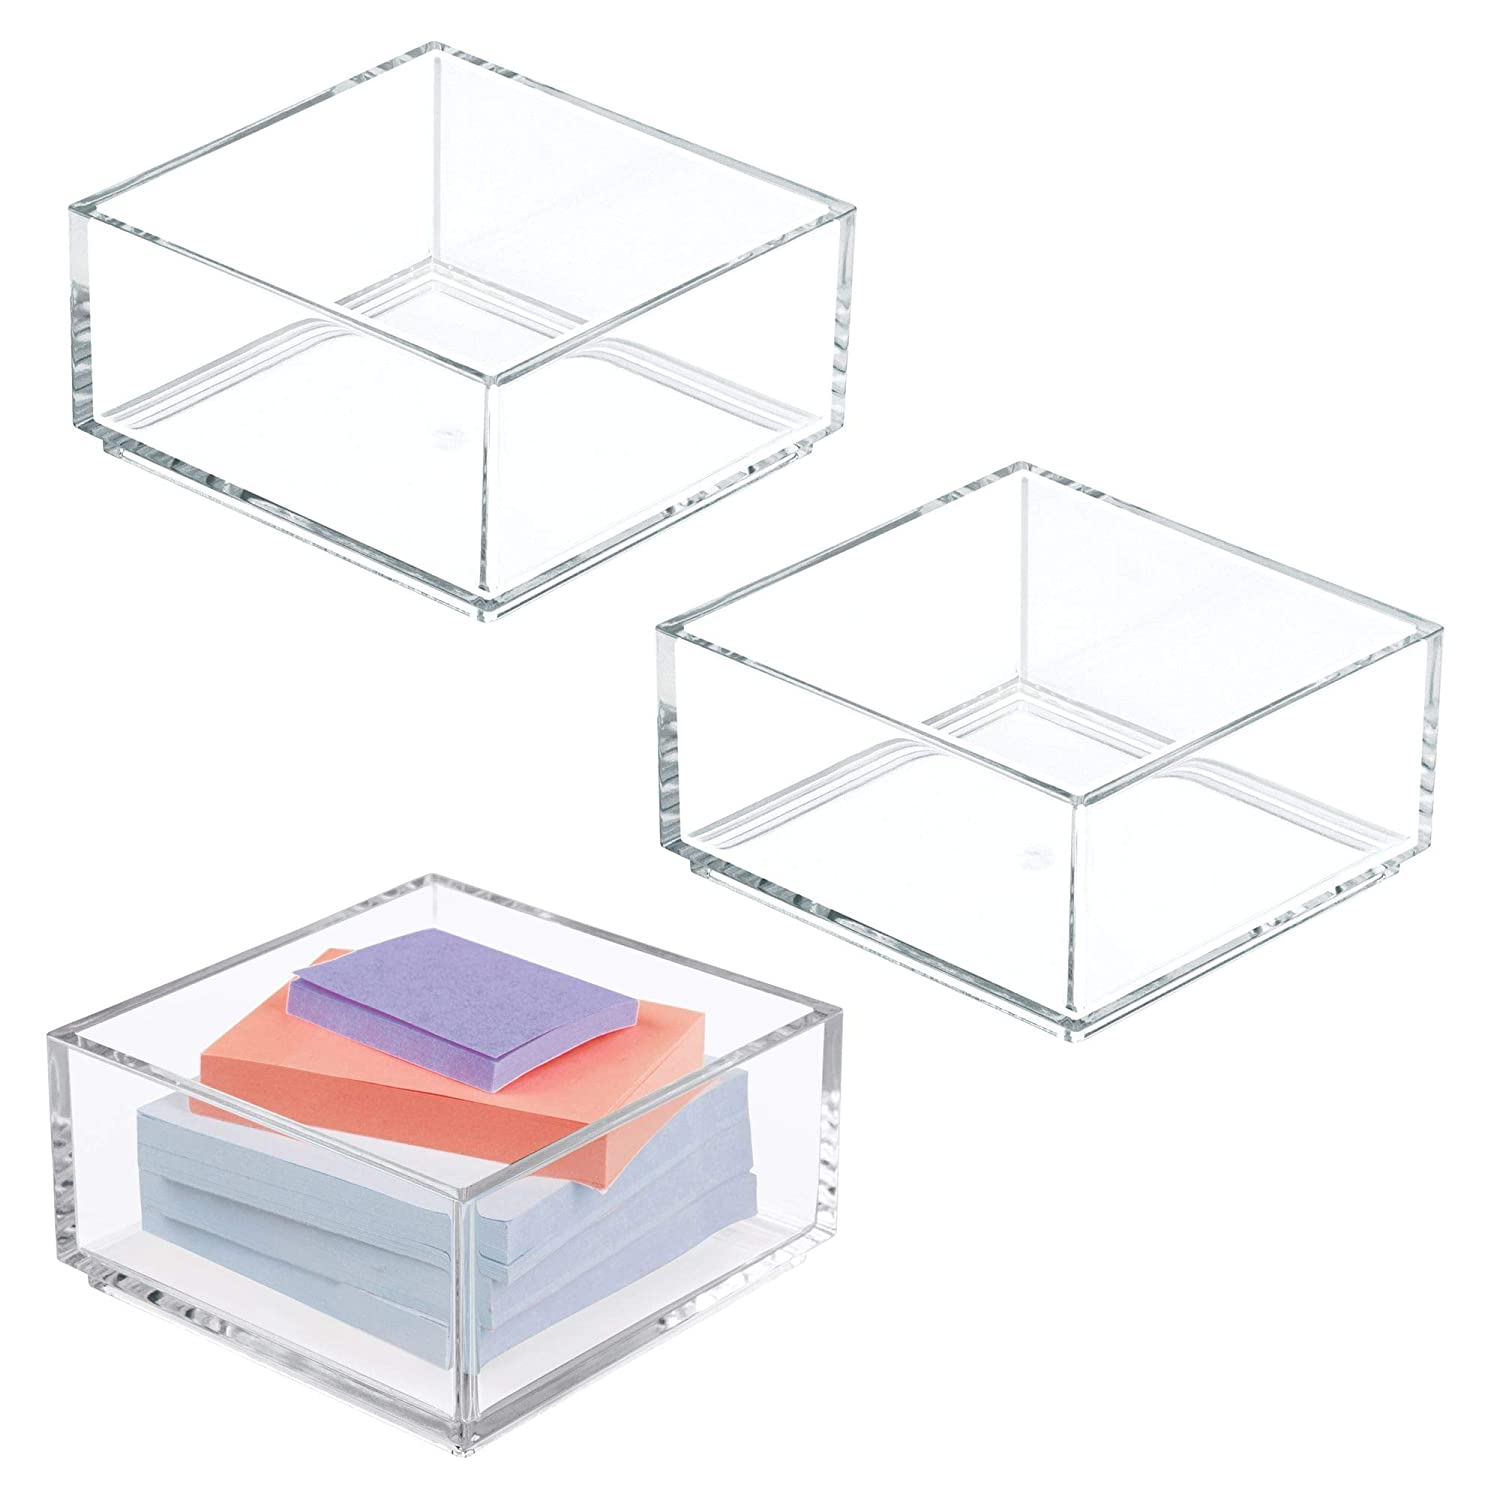 "mDesign Plastic Stackable Drawer Organizer for Home Office, Desk Drawer, Shelf or Closet to Hold Staples, Highlighters, Adhesive Tape, Paper Clips, Stamps - 4"" Square, 3 Pack - Clear"